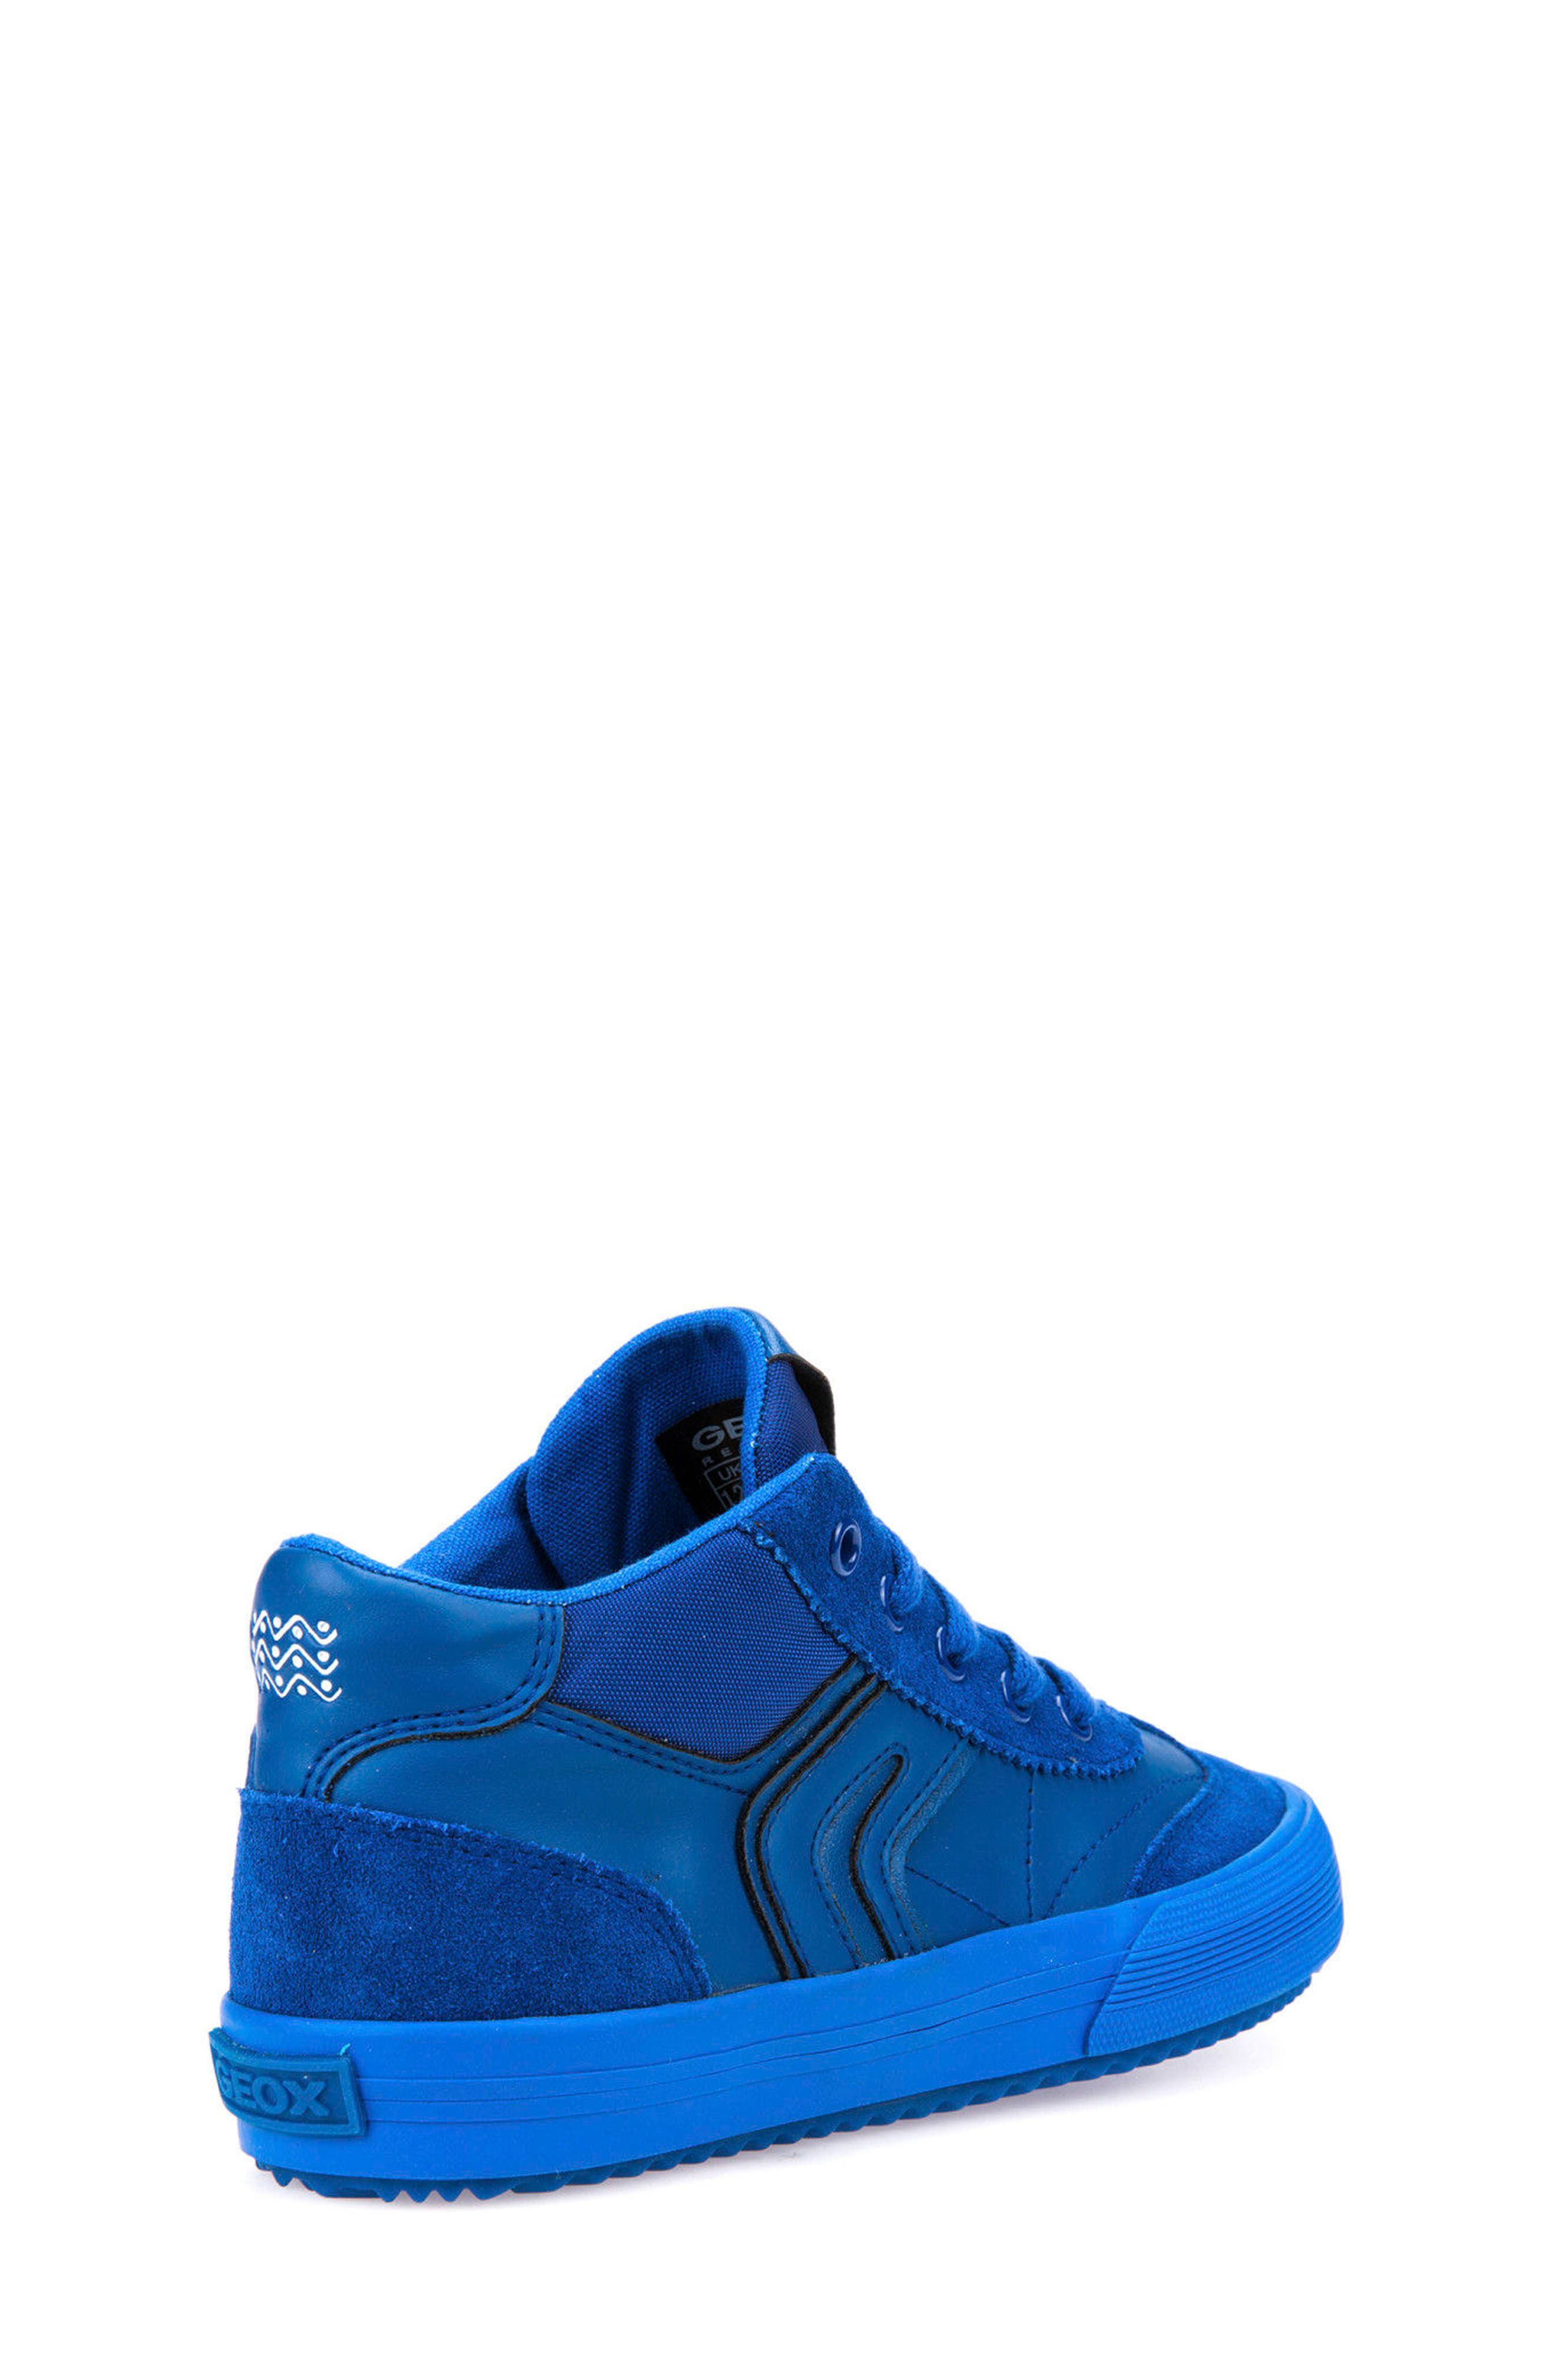 Alonisso Mid Top Sneaker,                             Alternate thumbnail 11, color,